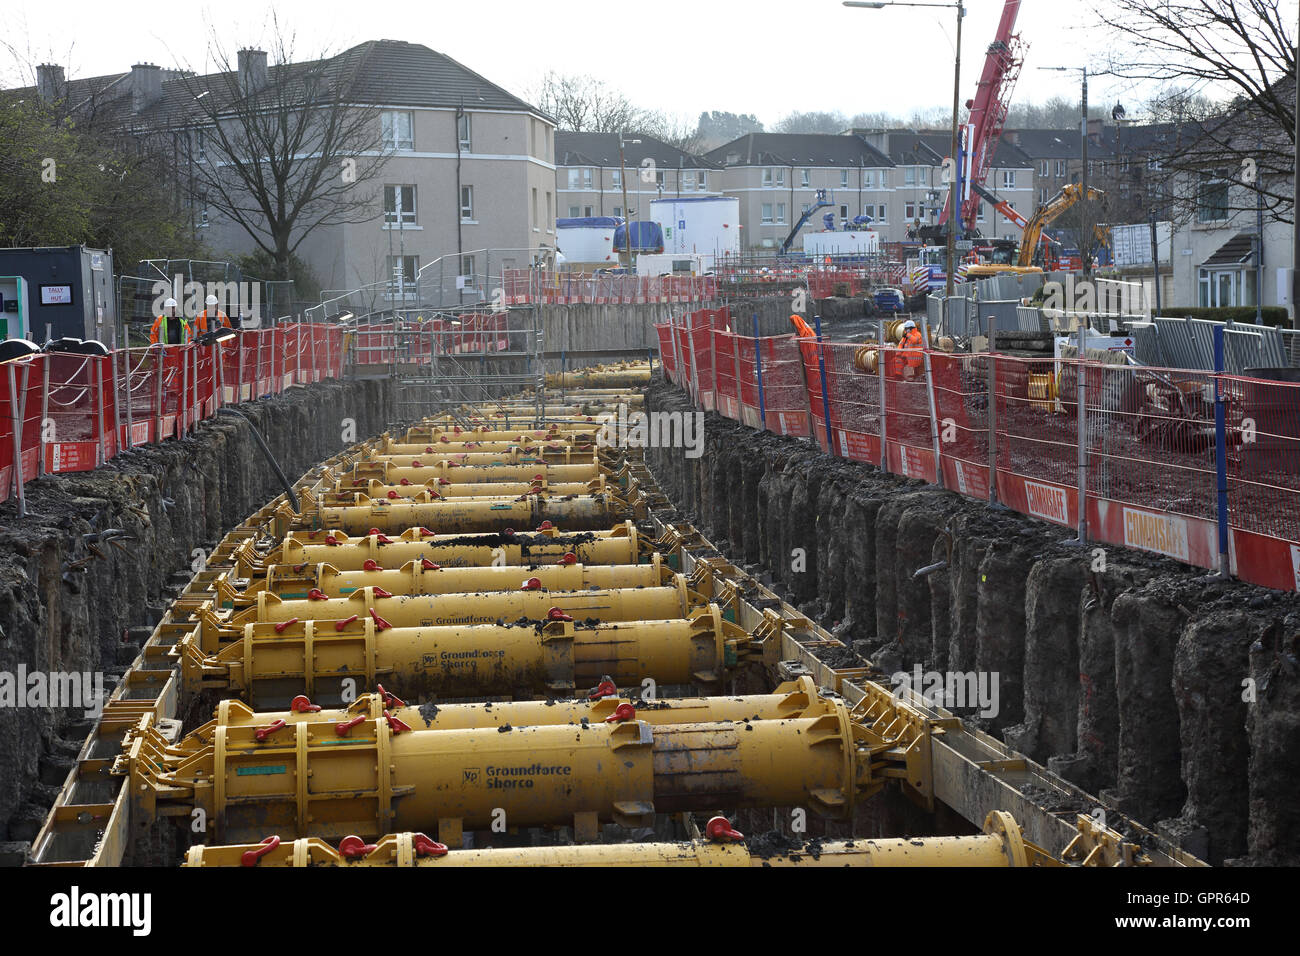 The excavation for new, large-diameter sewer through the Shield Hall district of Glasgow. Shows shoring and surrounding - Stock Image